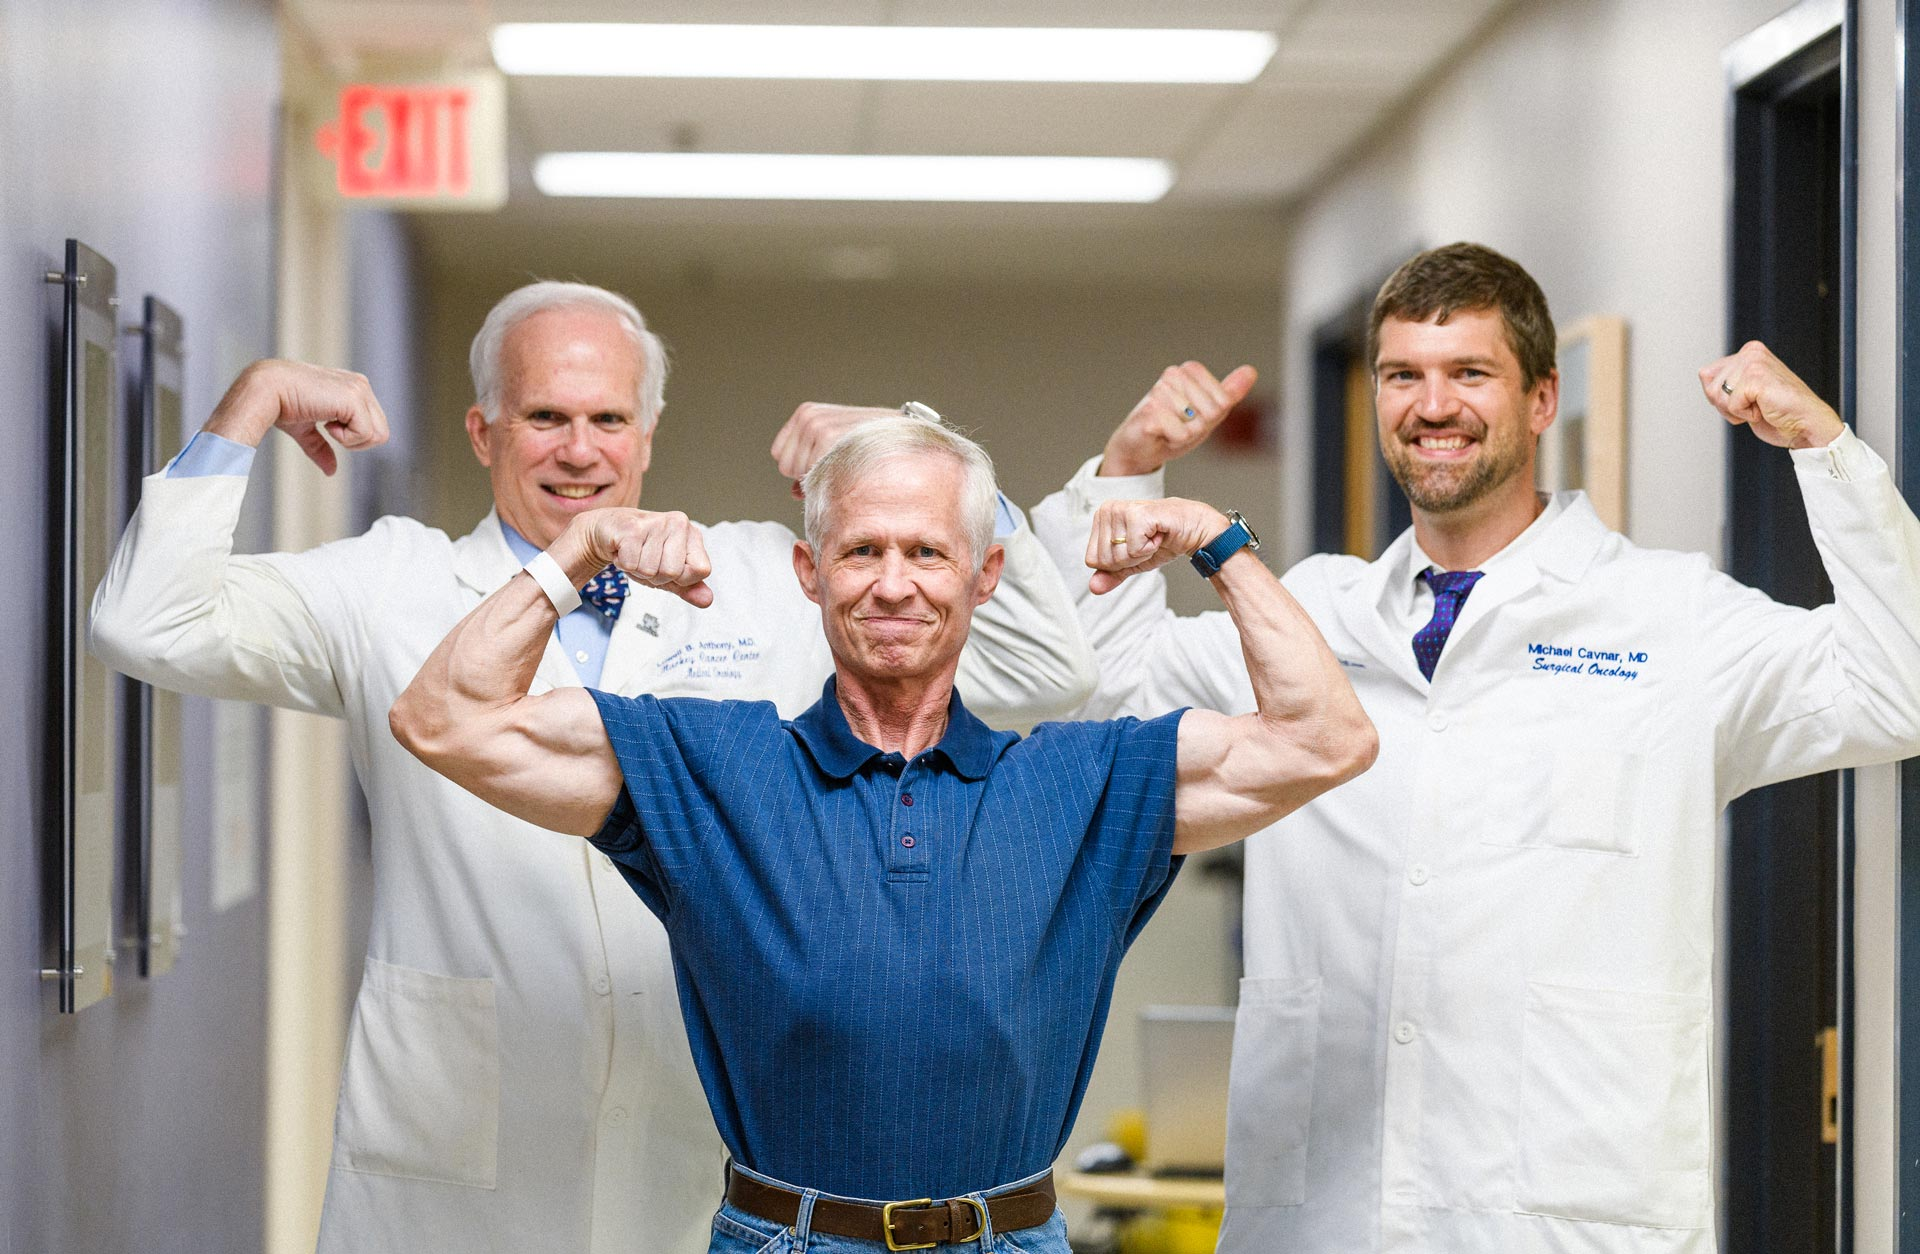 Joe Marksteiner posing with Dr. Michael Cavnar and Dr. Lowell Anthony